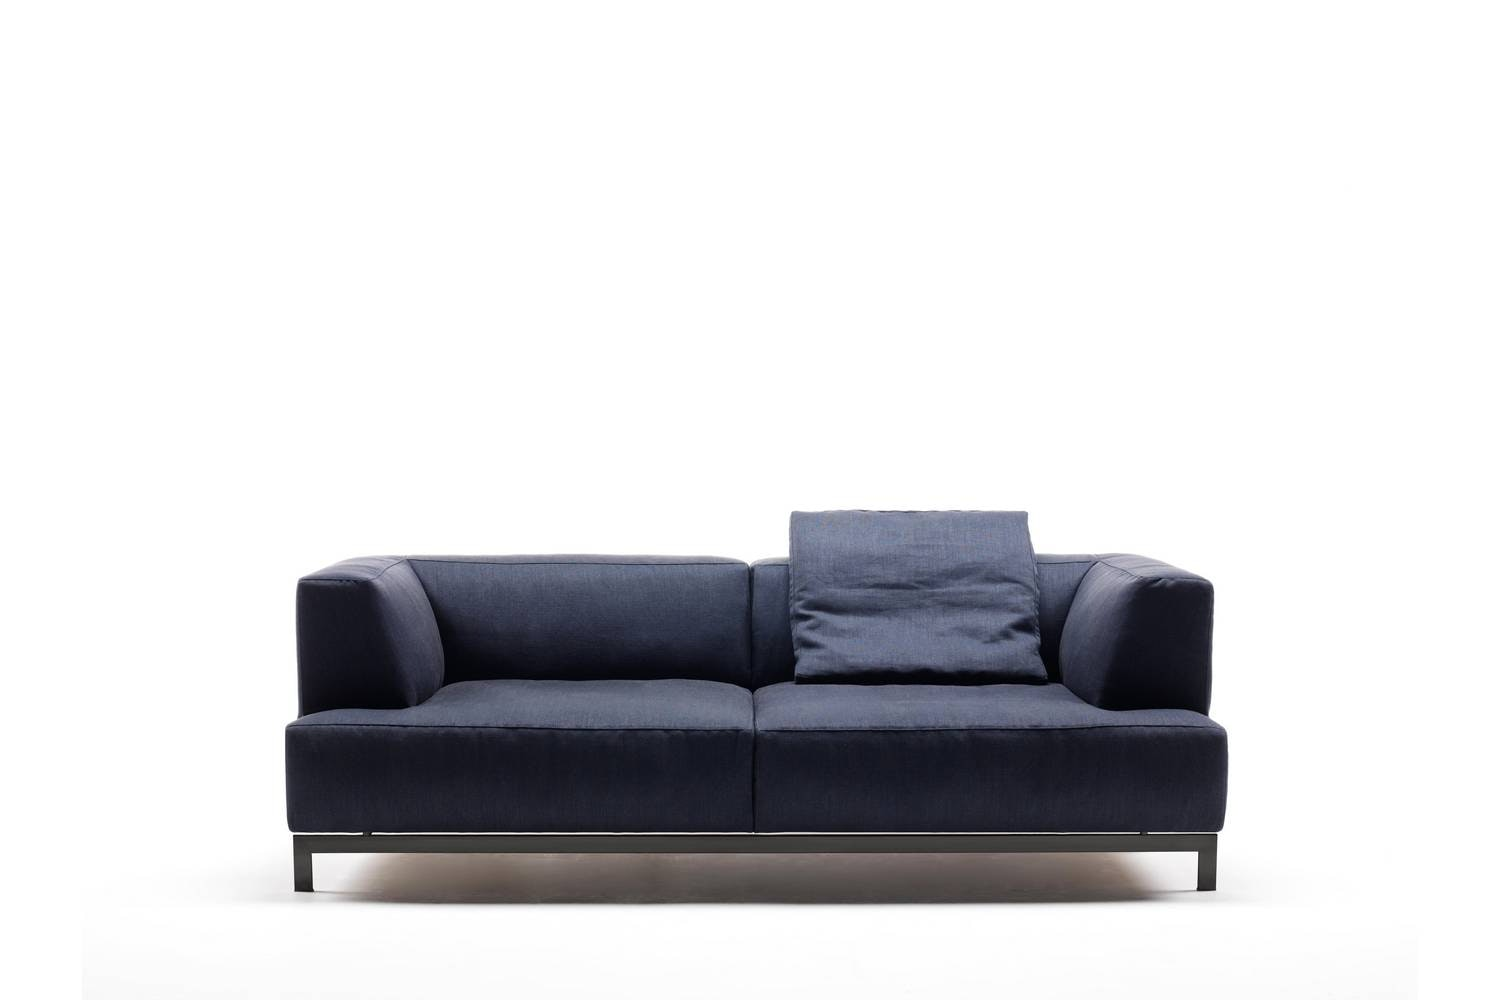 Metrocubo Sofa by Piero Lissoni for Living Divani